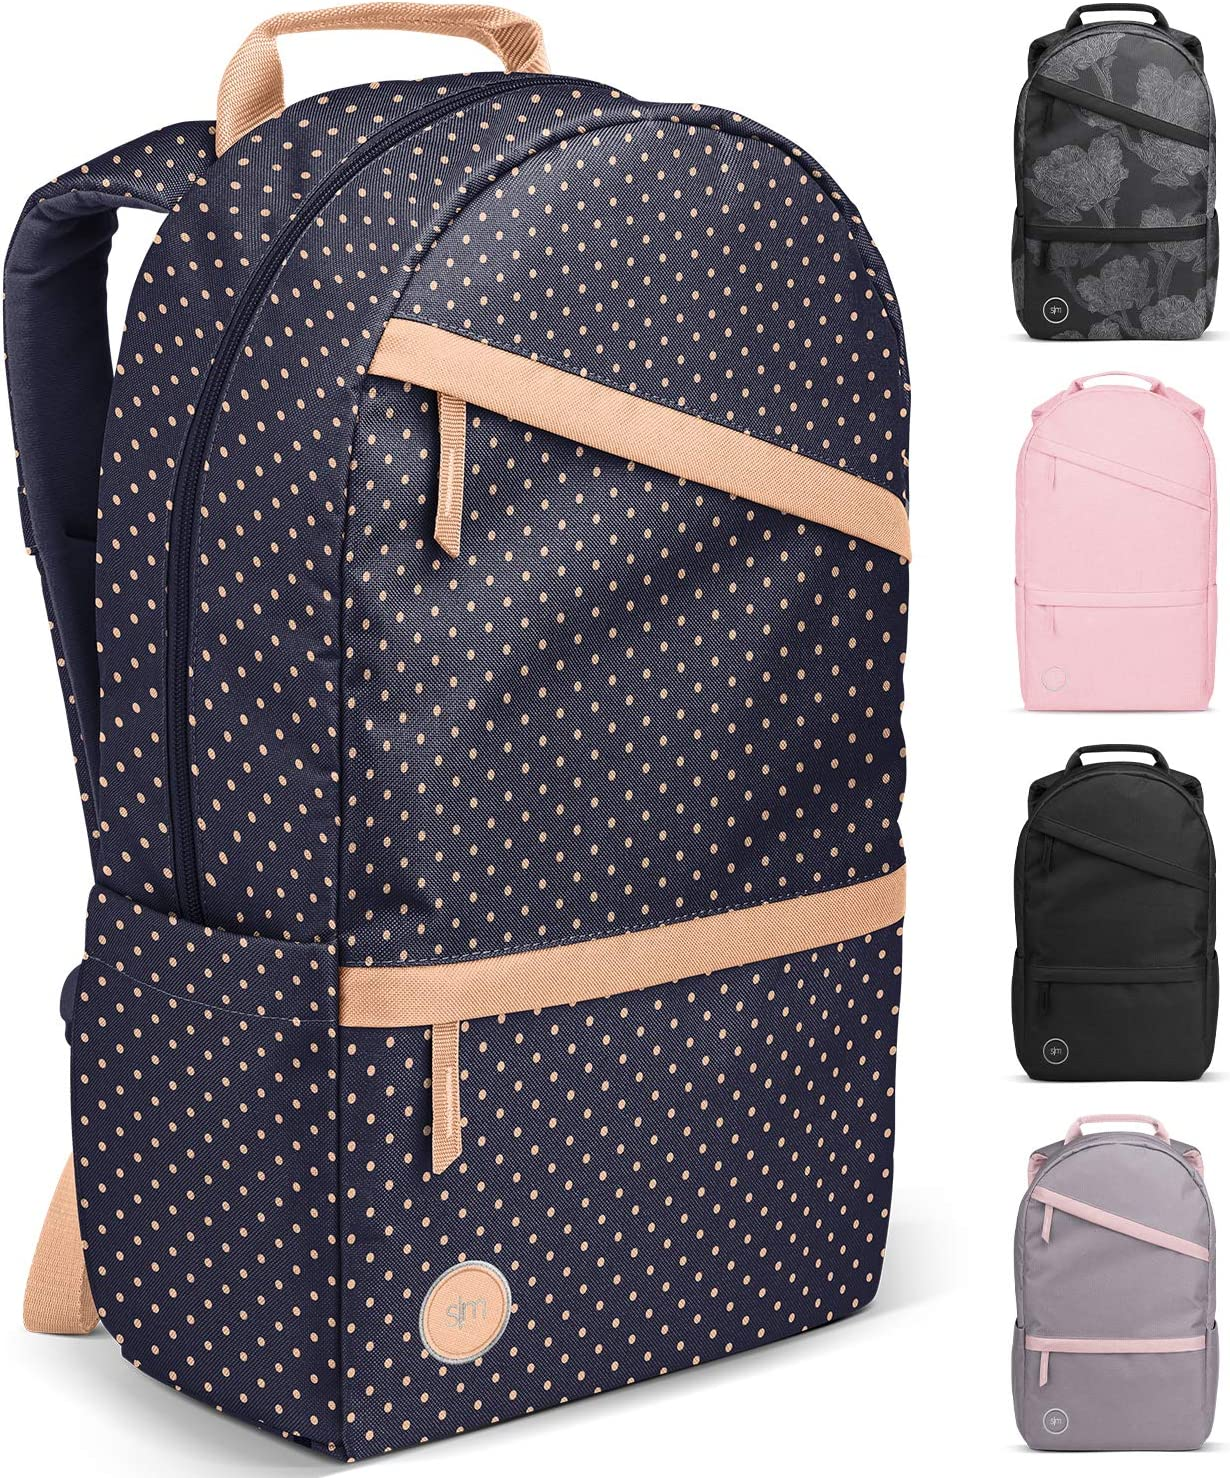 Simple Modern Legacy Backpack with Laptop Compartment, Dainty Dots, 25 Liter